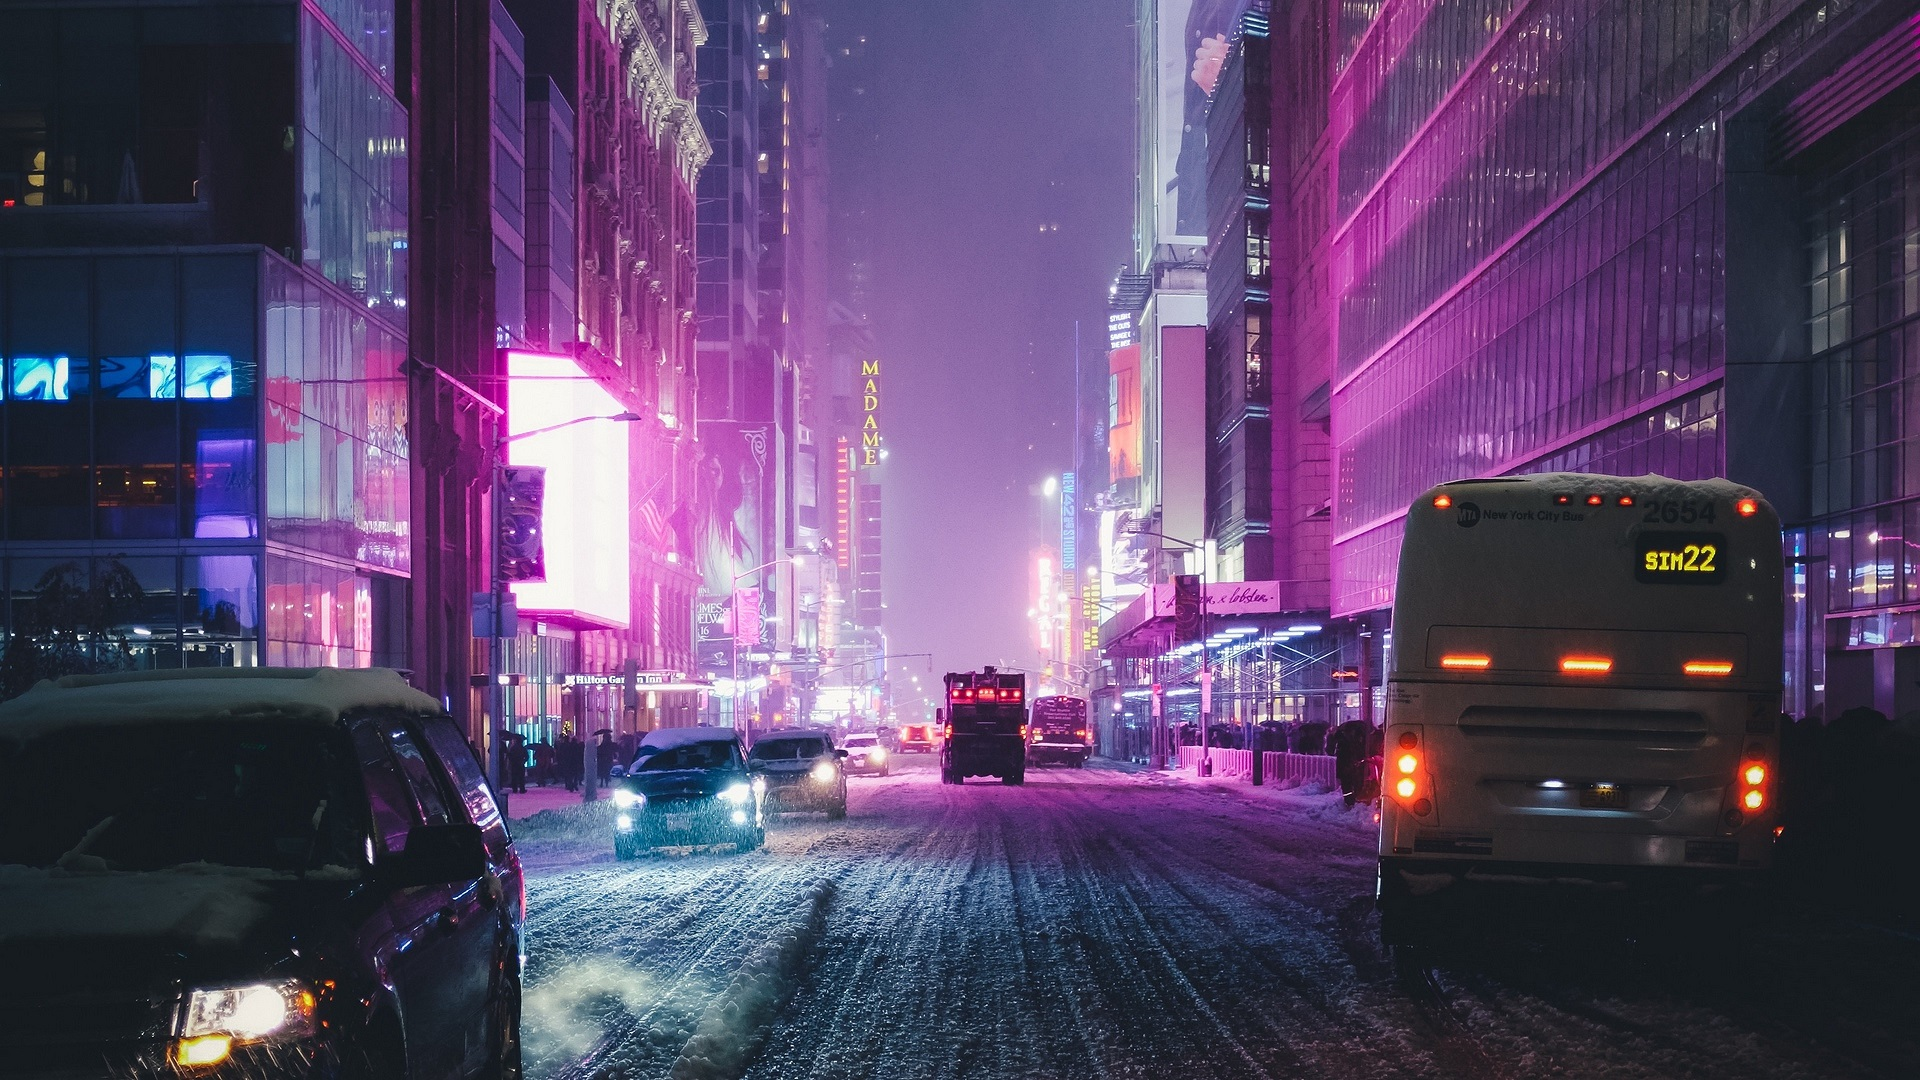 General 1920x1080 city night road car snow winter building neon New York City